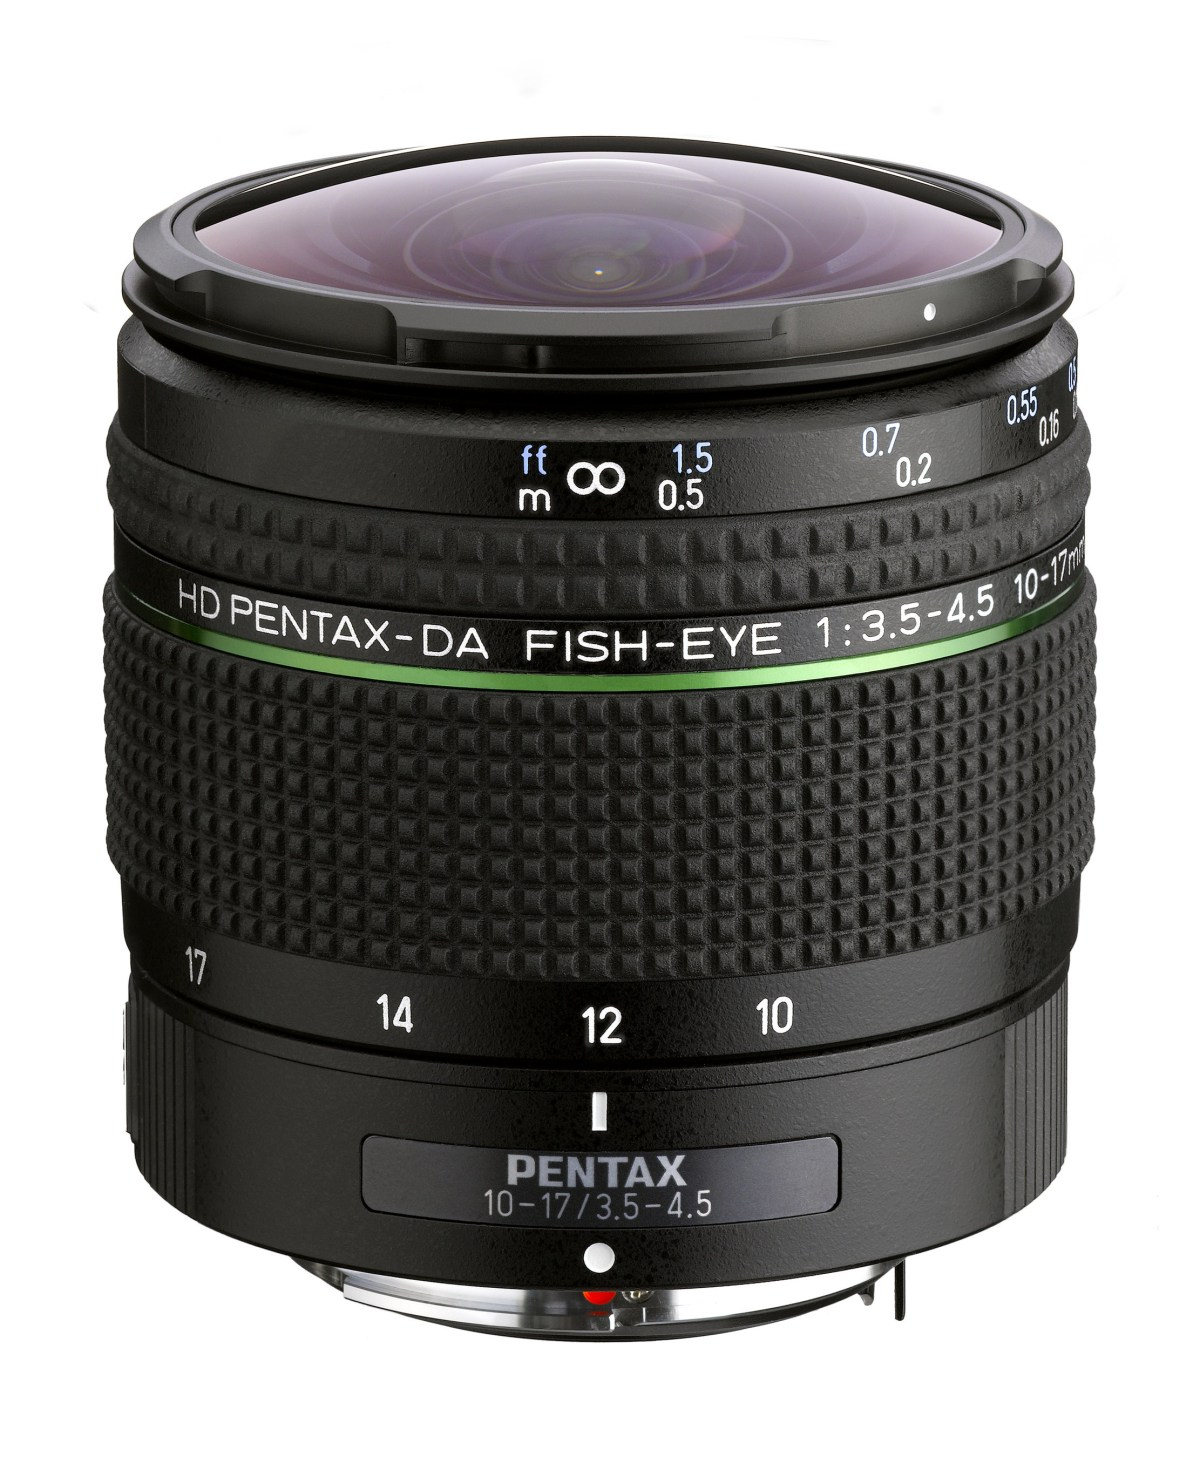 Ricoh Imaging Americas Corporation today announced the launch of the HD PENTAX-DA FISH-EYE 10-17mm F3.5-4.5 ED zoom lens for use with K-mount digital SLR cameras. The compact and lightweight fish-eye lens features the latest HD coating and a completely redesigned body.